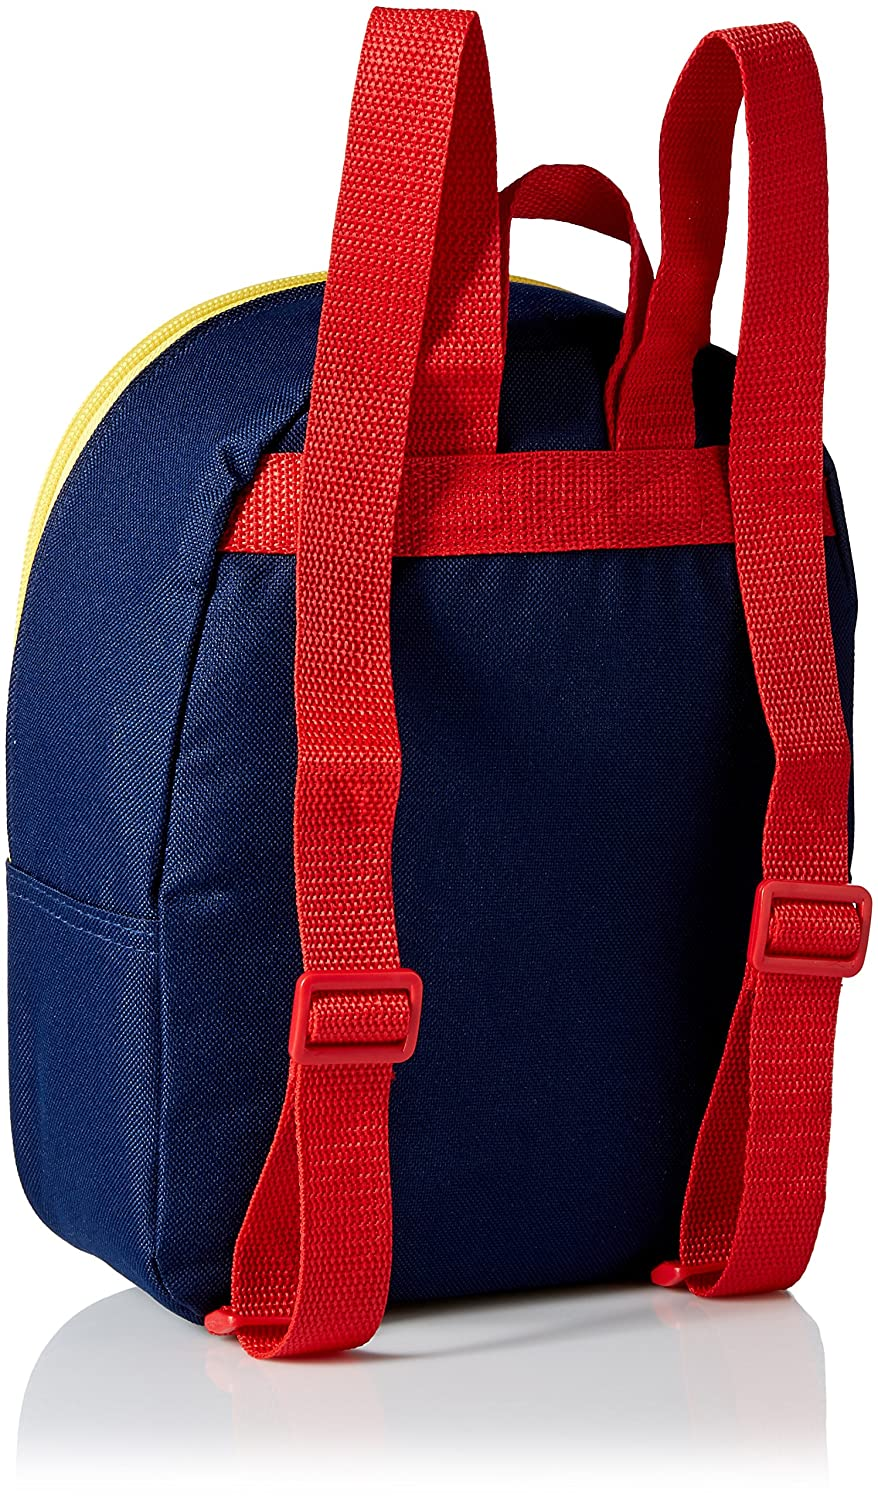 Disney Mickey Mouse Adventure Backpack Image 2